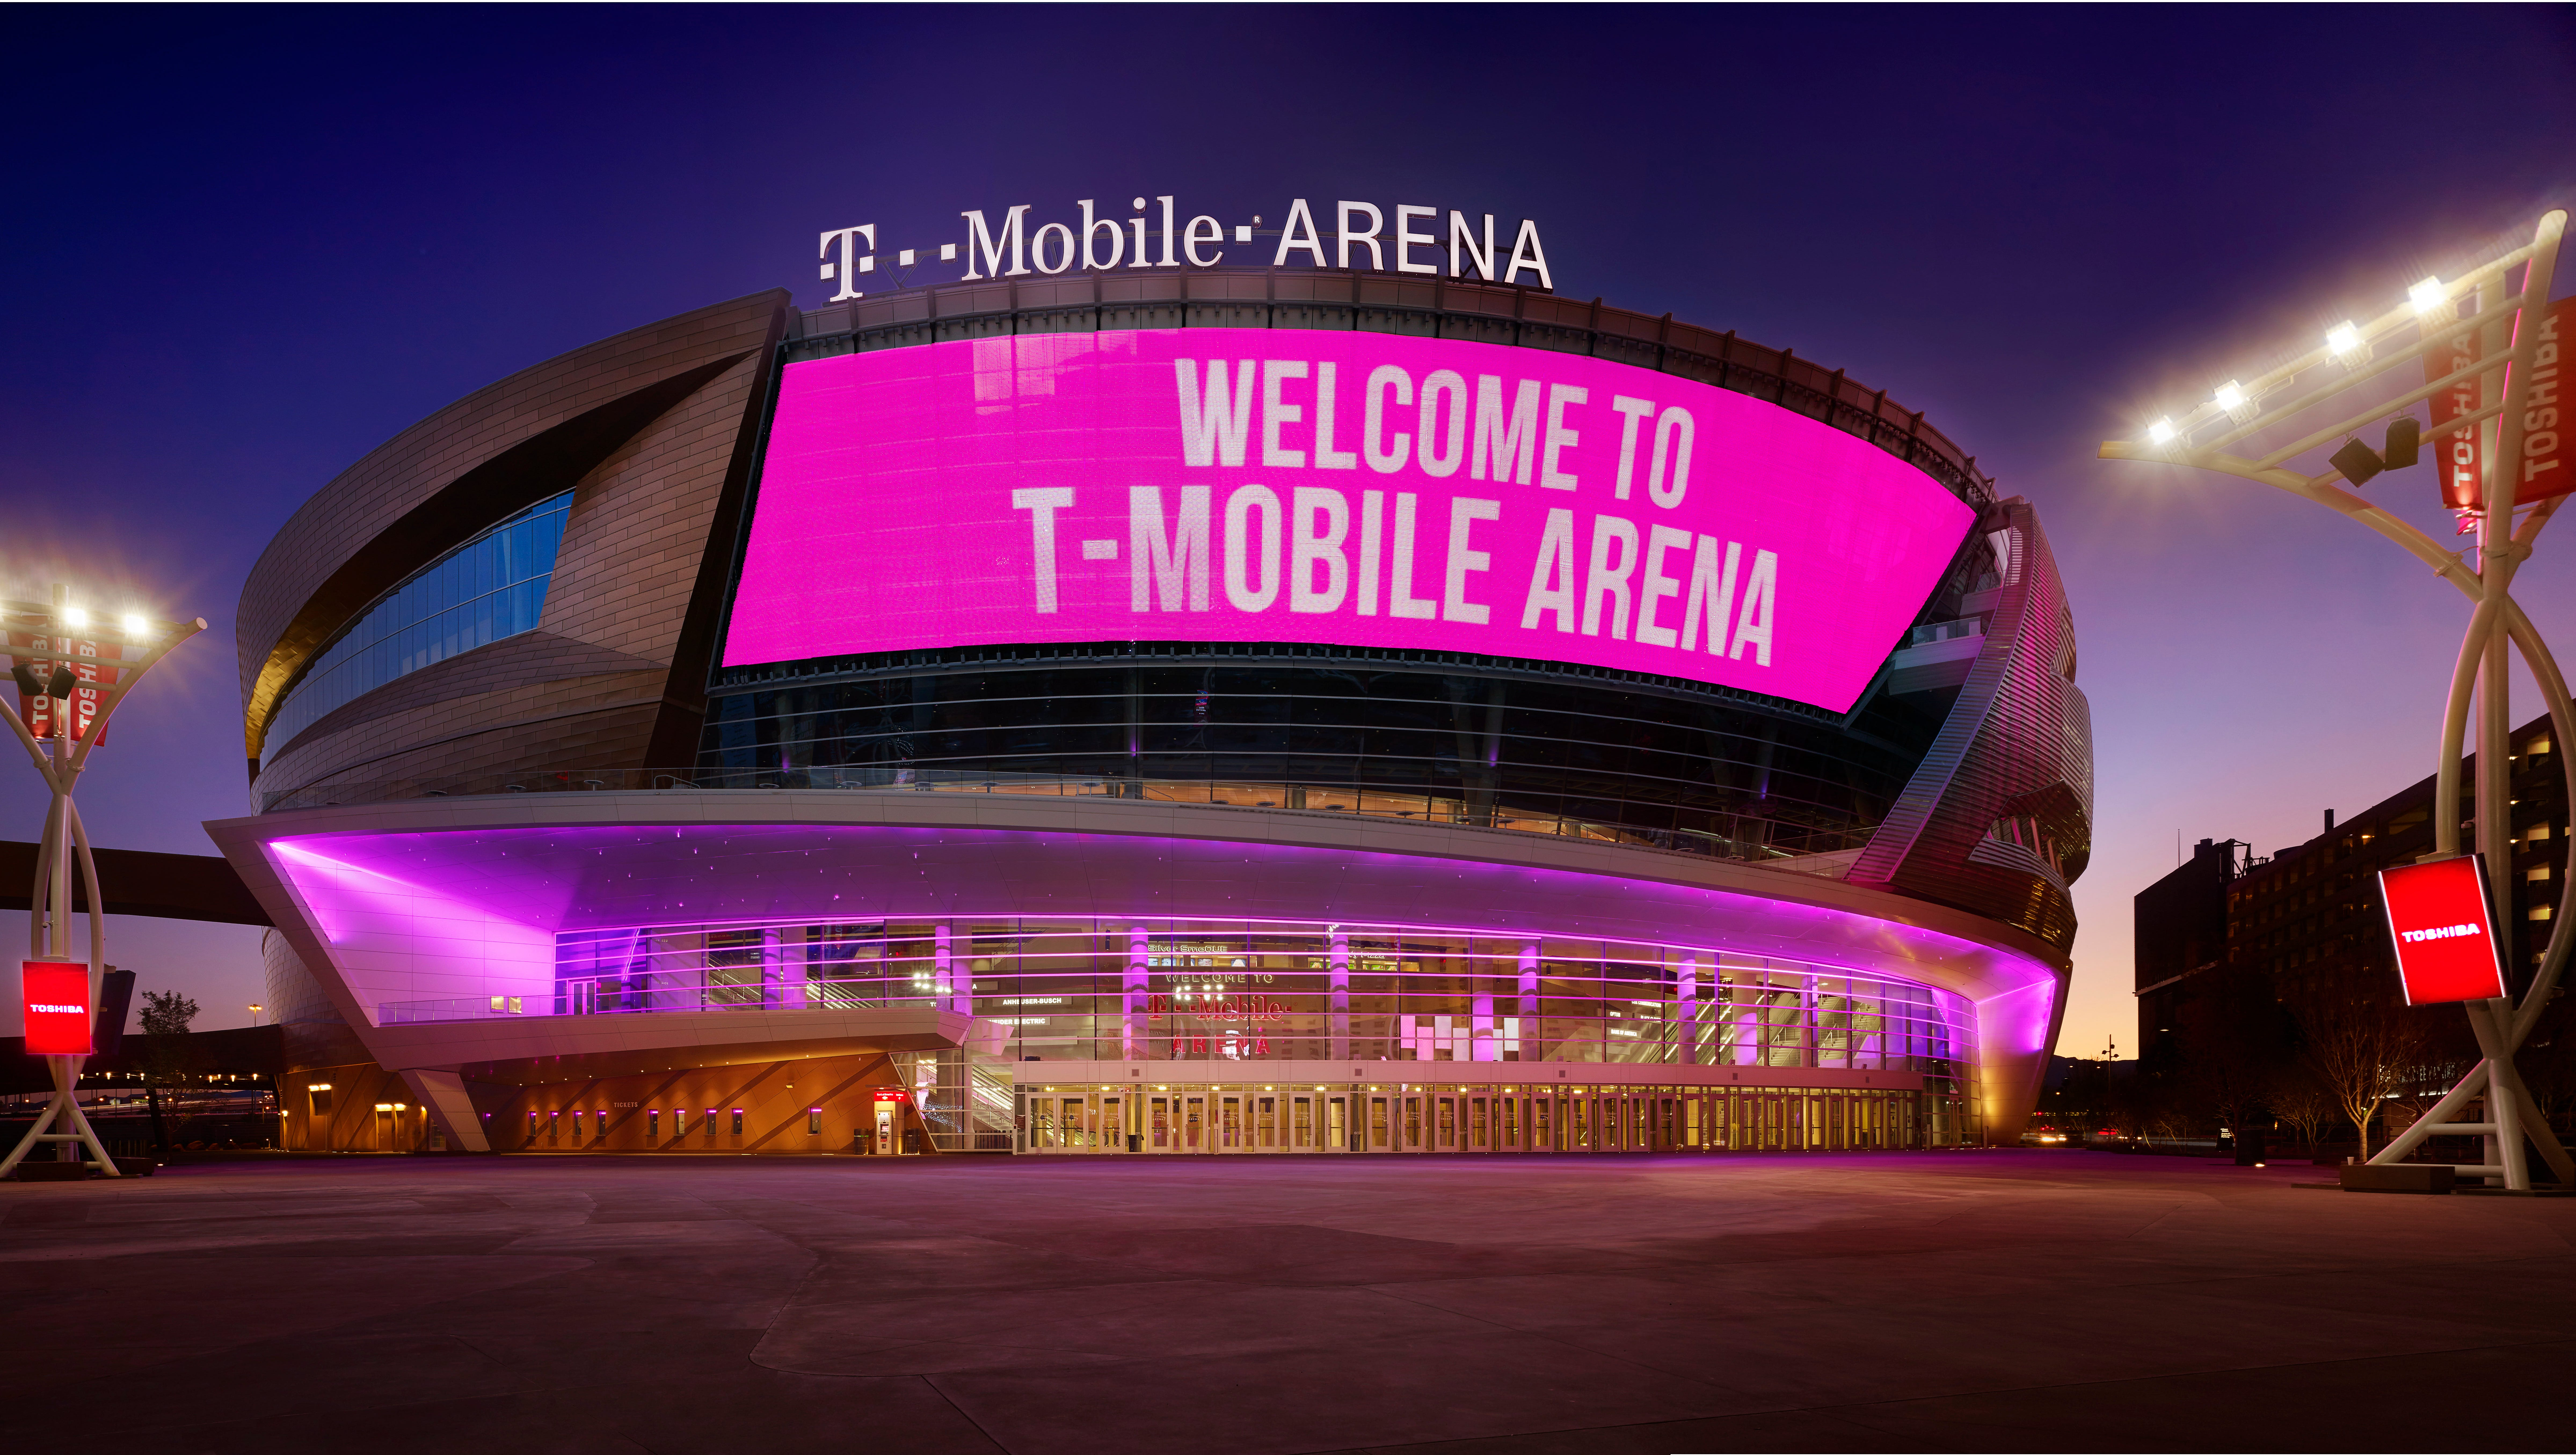 First look: Las Vegas' new T-Mobile Arena